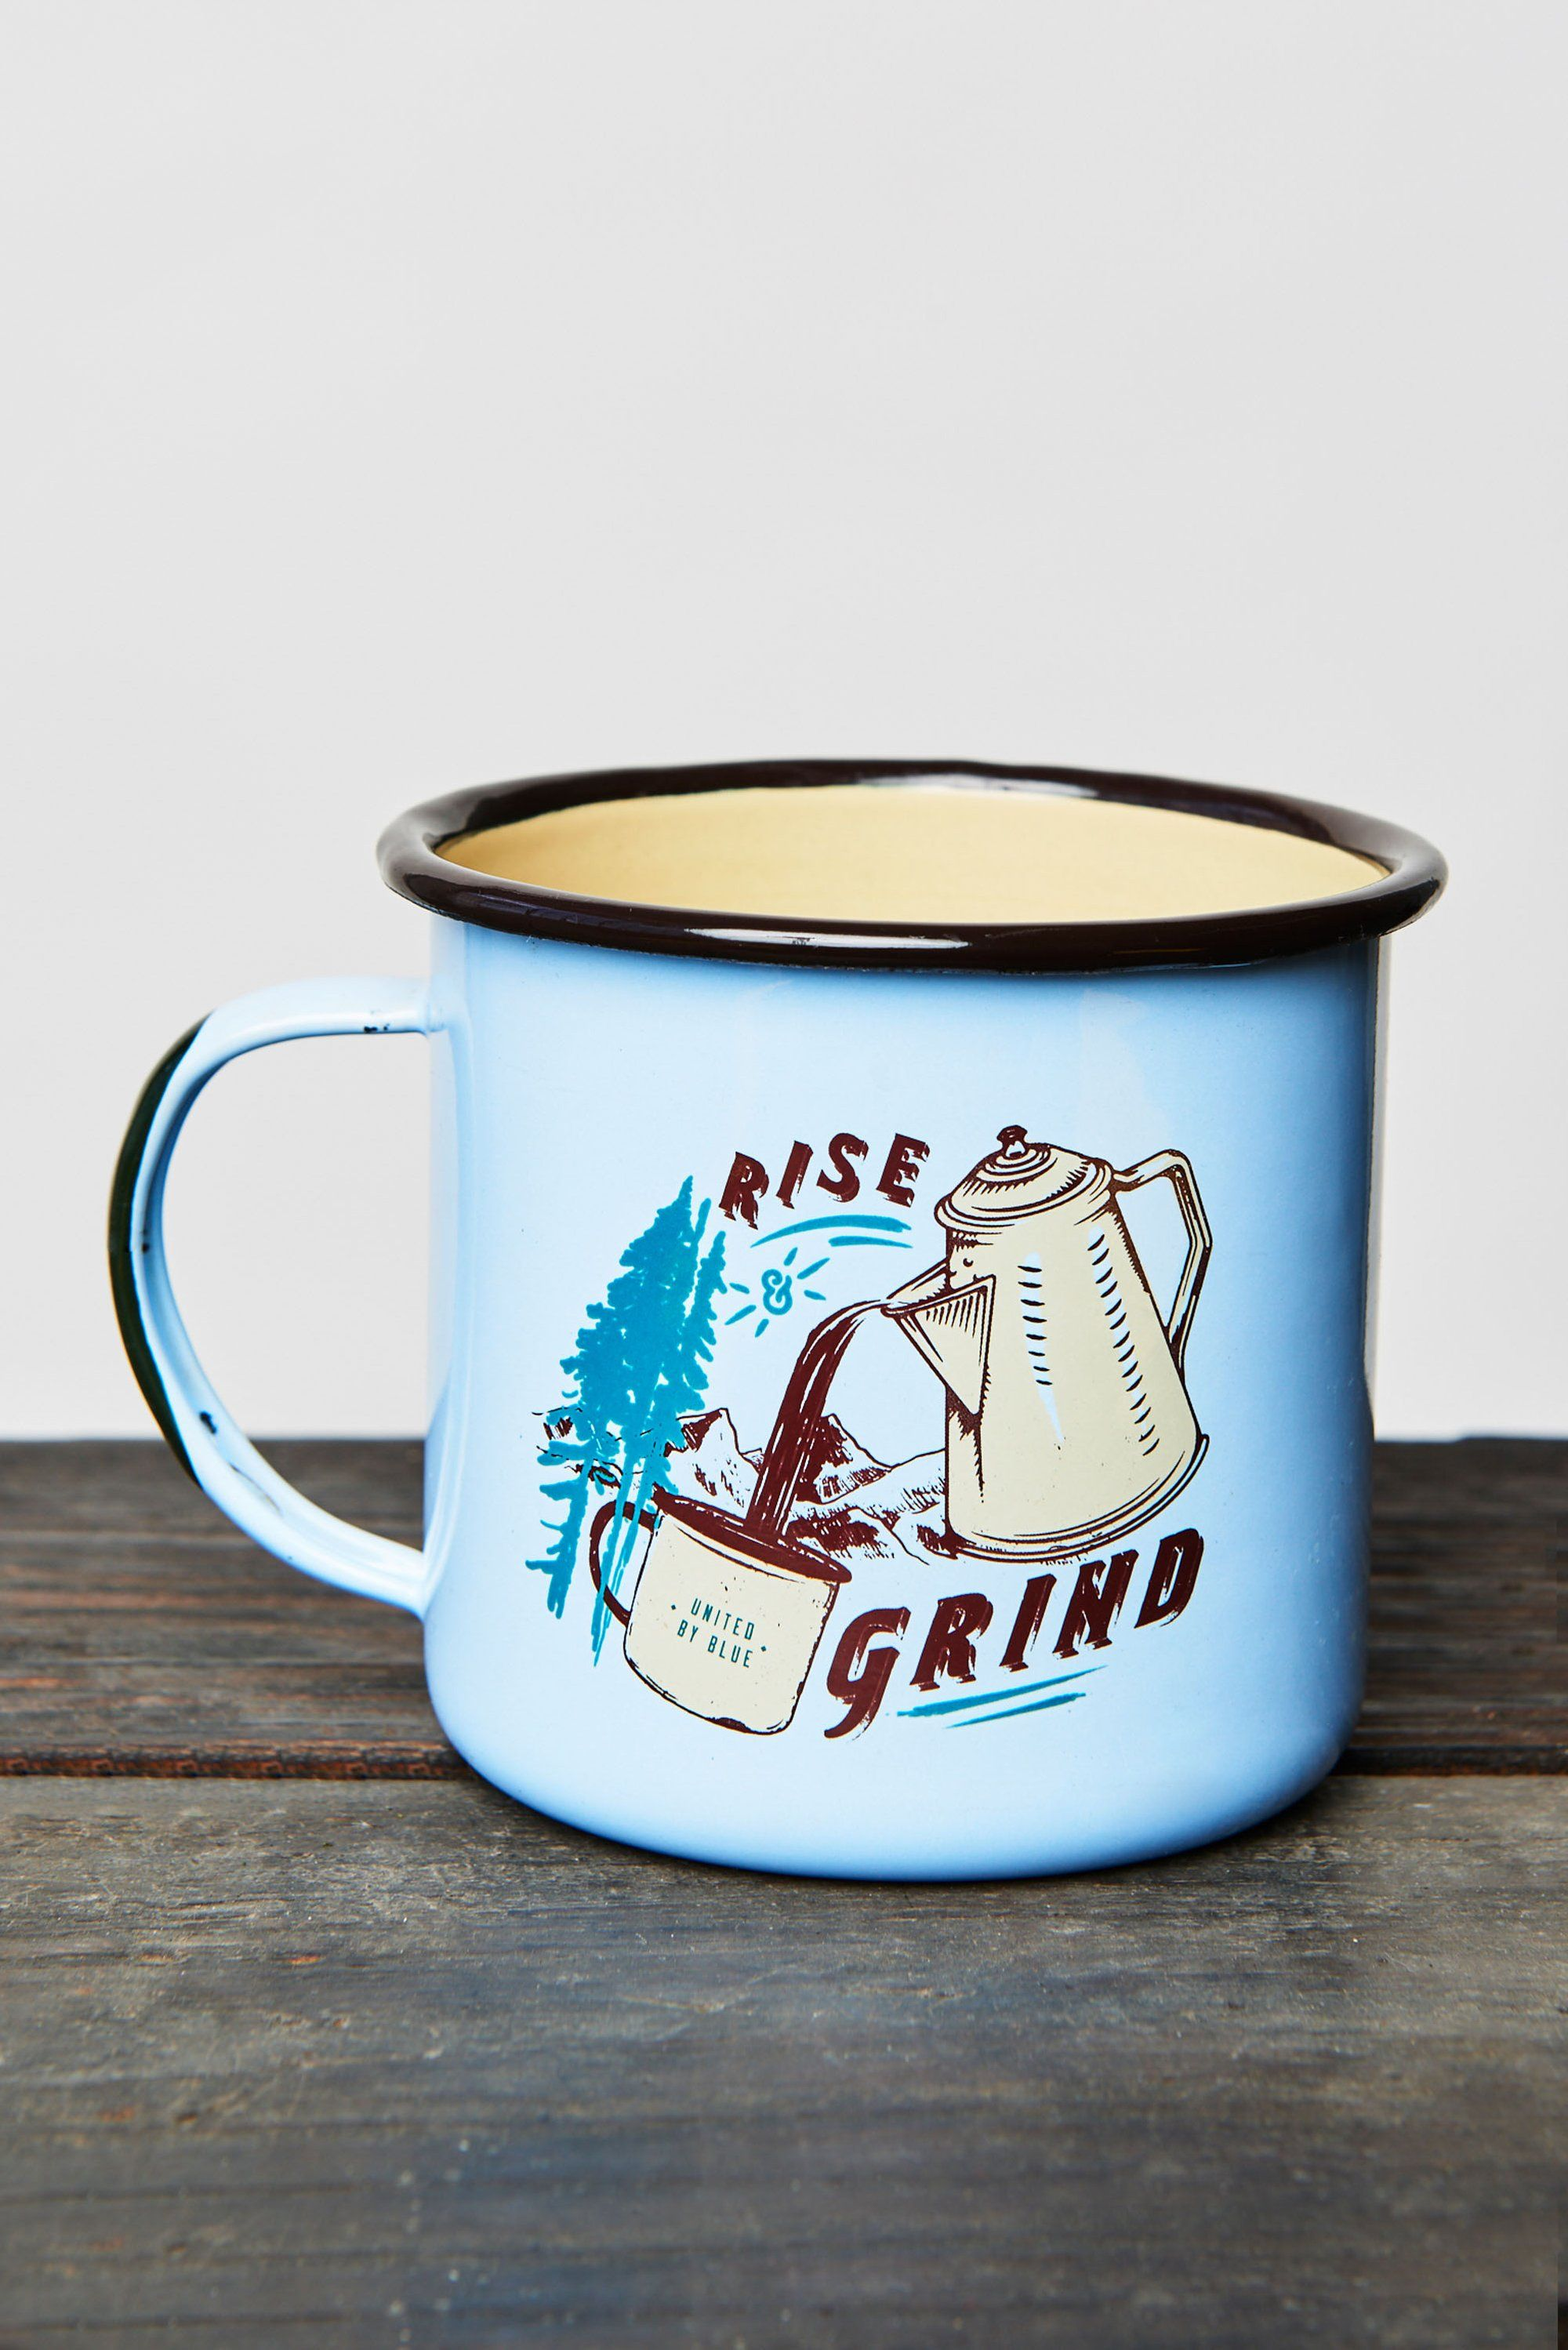 22 Oz Rise Grind Enamel Steel Mug United By Blue